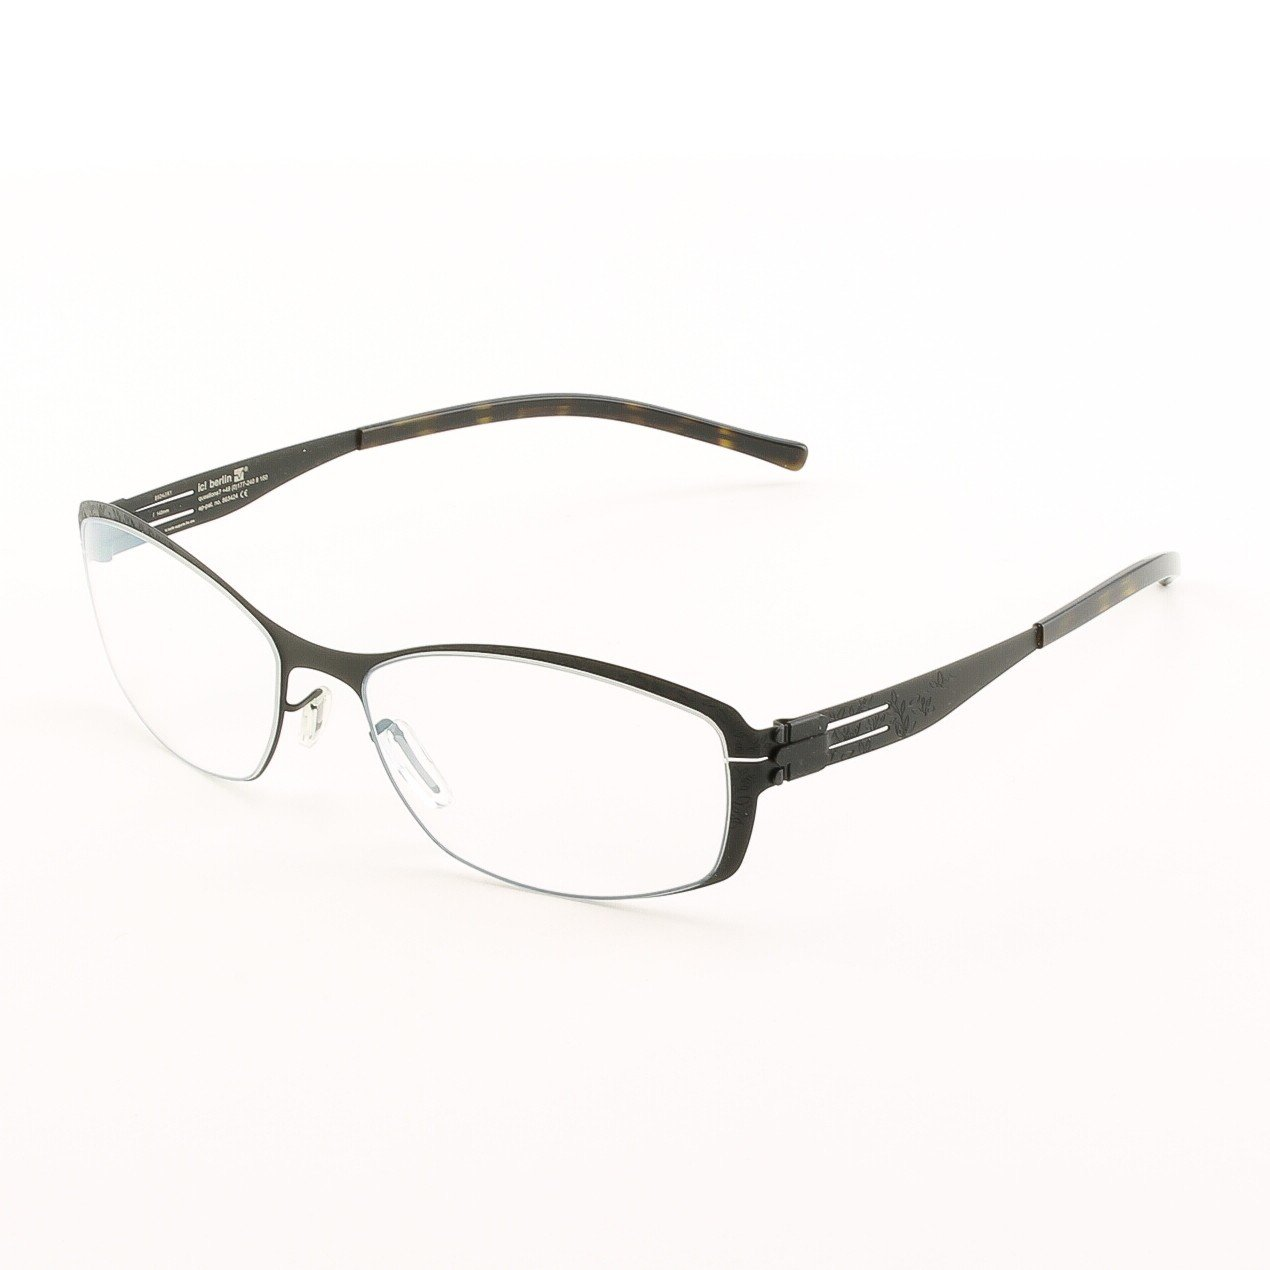 ic! Berlin Edelweiss Eyeglasses Col. Black with Clear Lenses